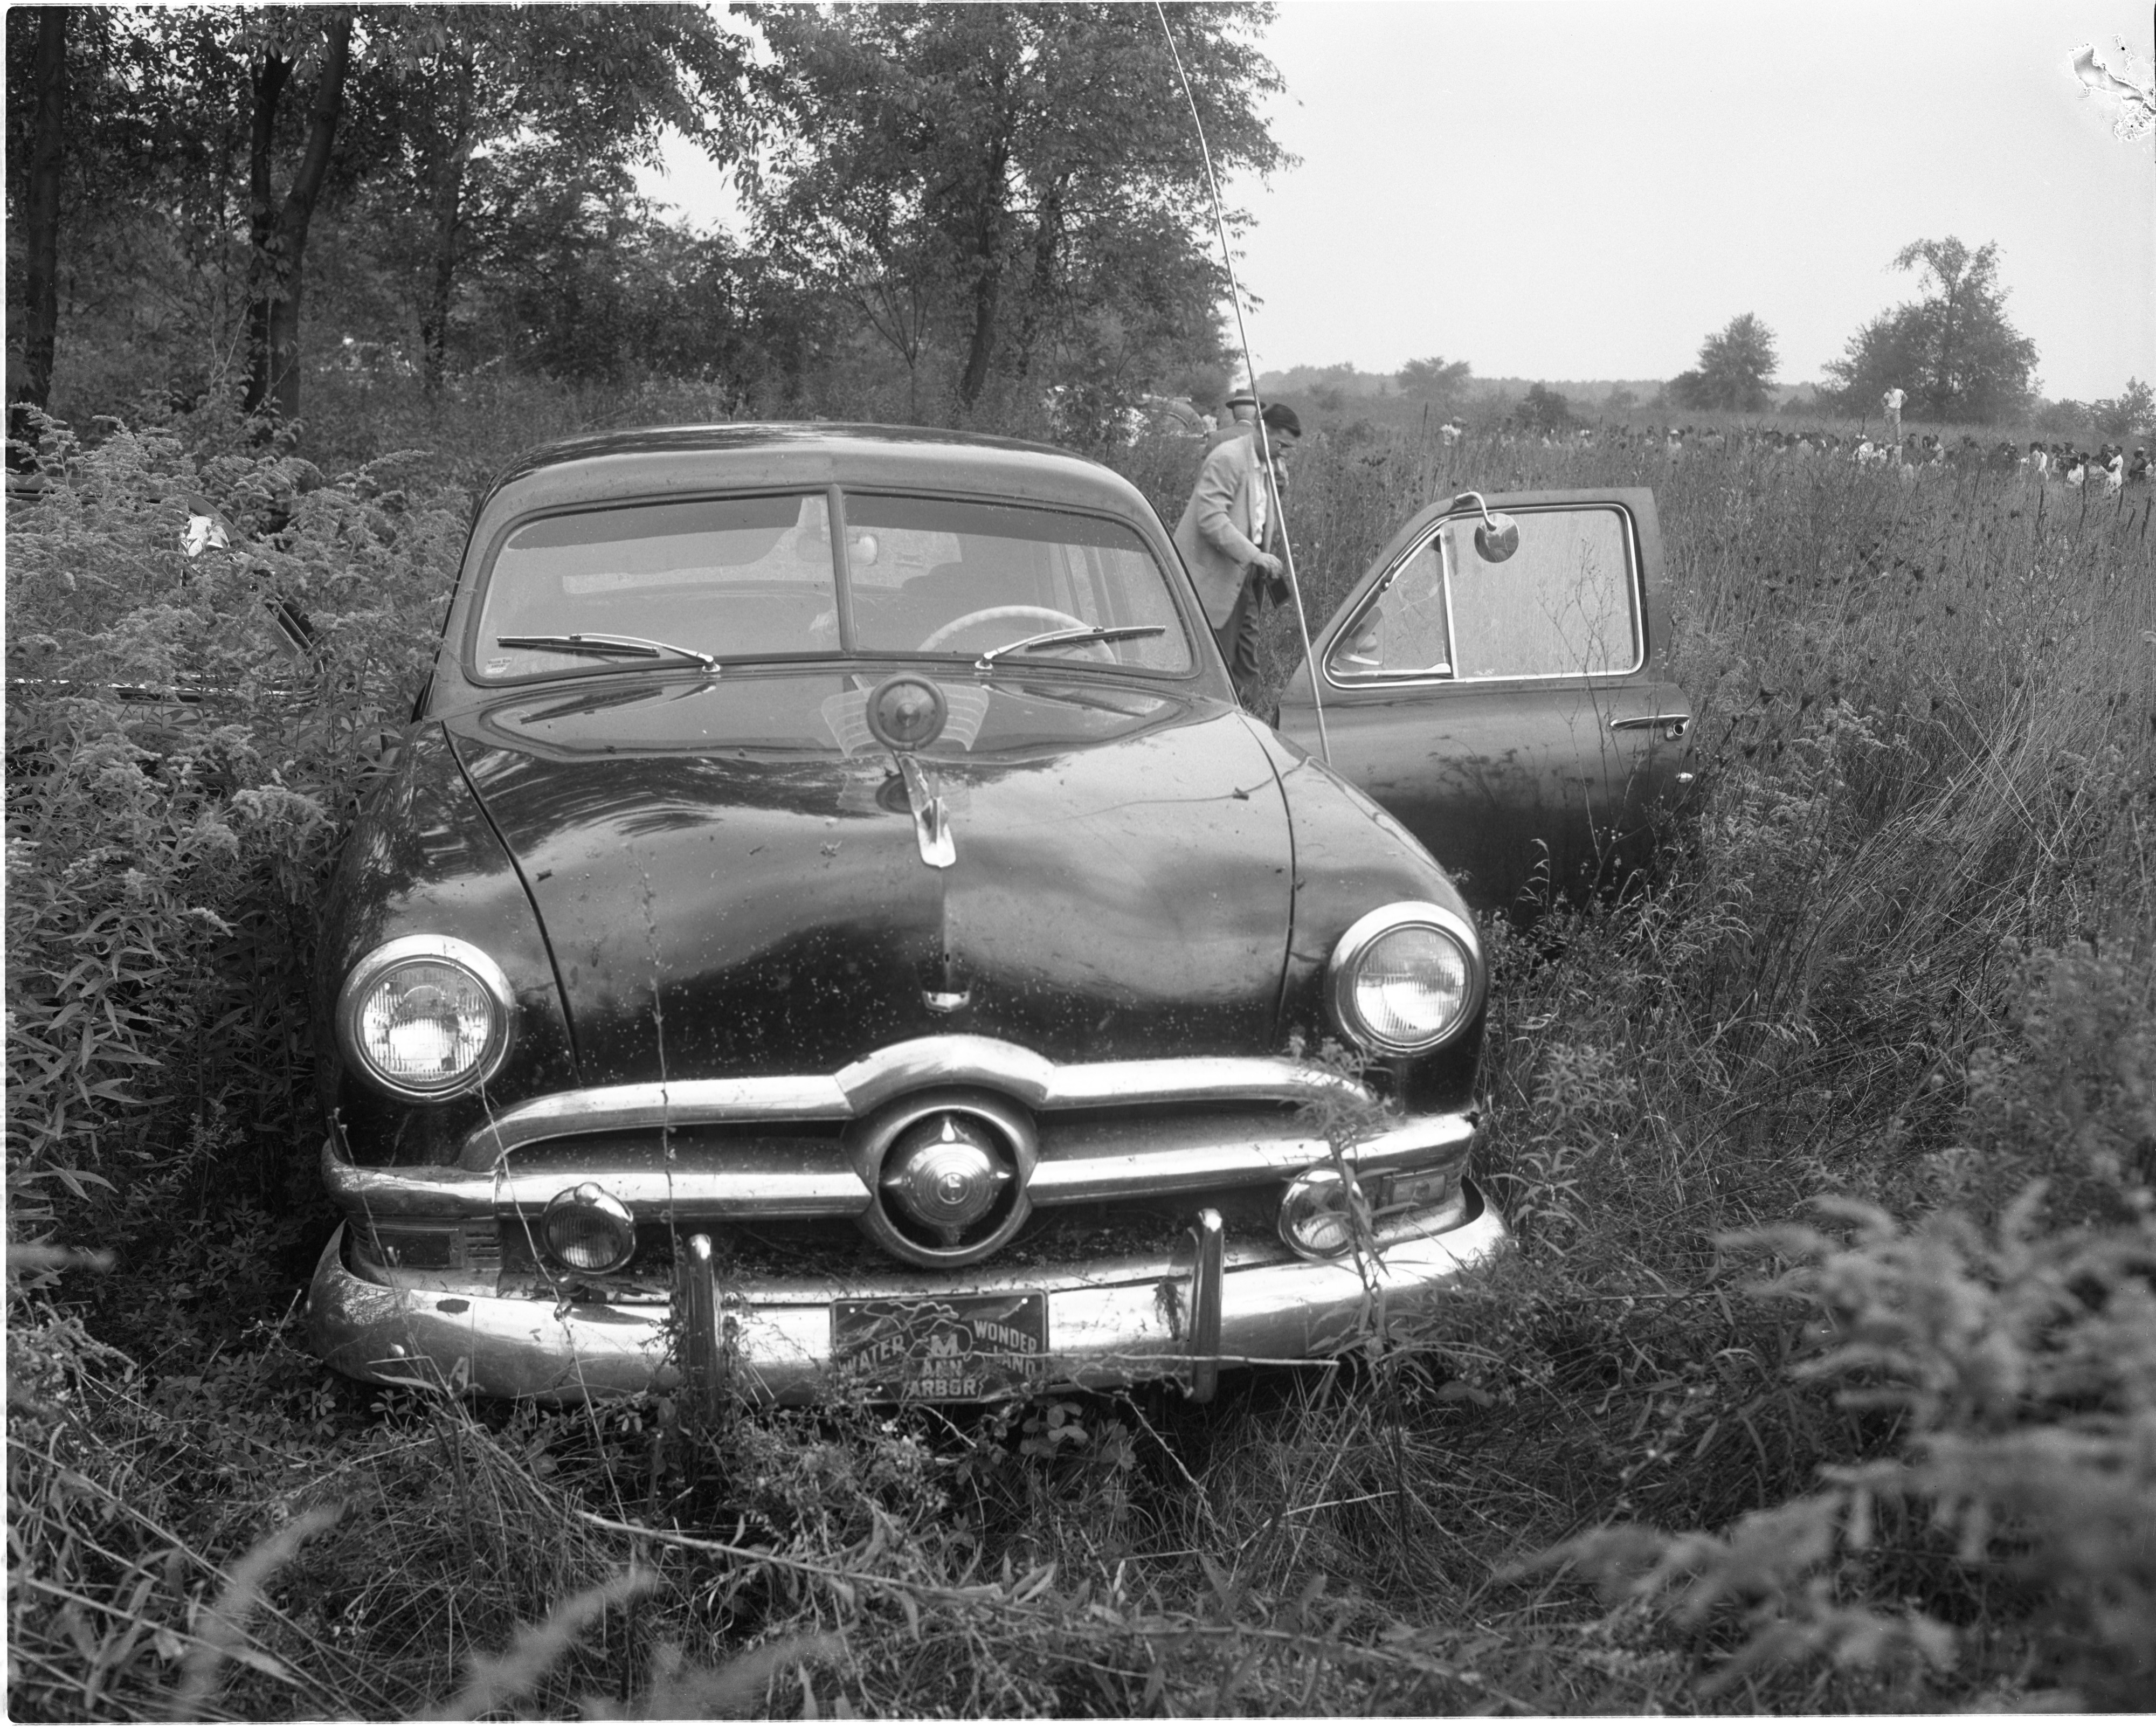 Investigators At The Willow Village Scene Where Murder Victim Dell Cain Was Found, September 1956 image